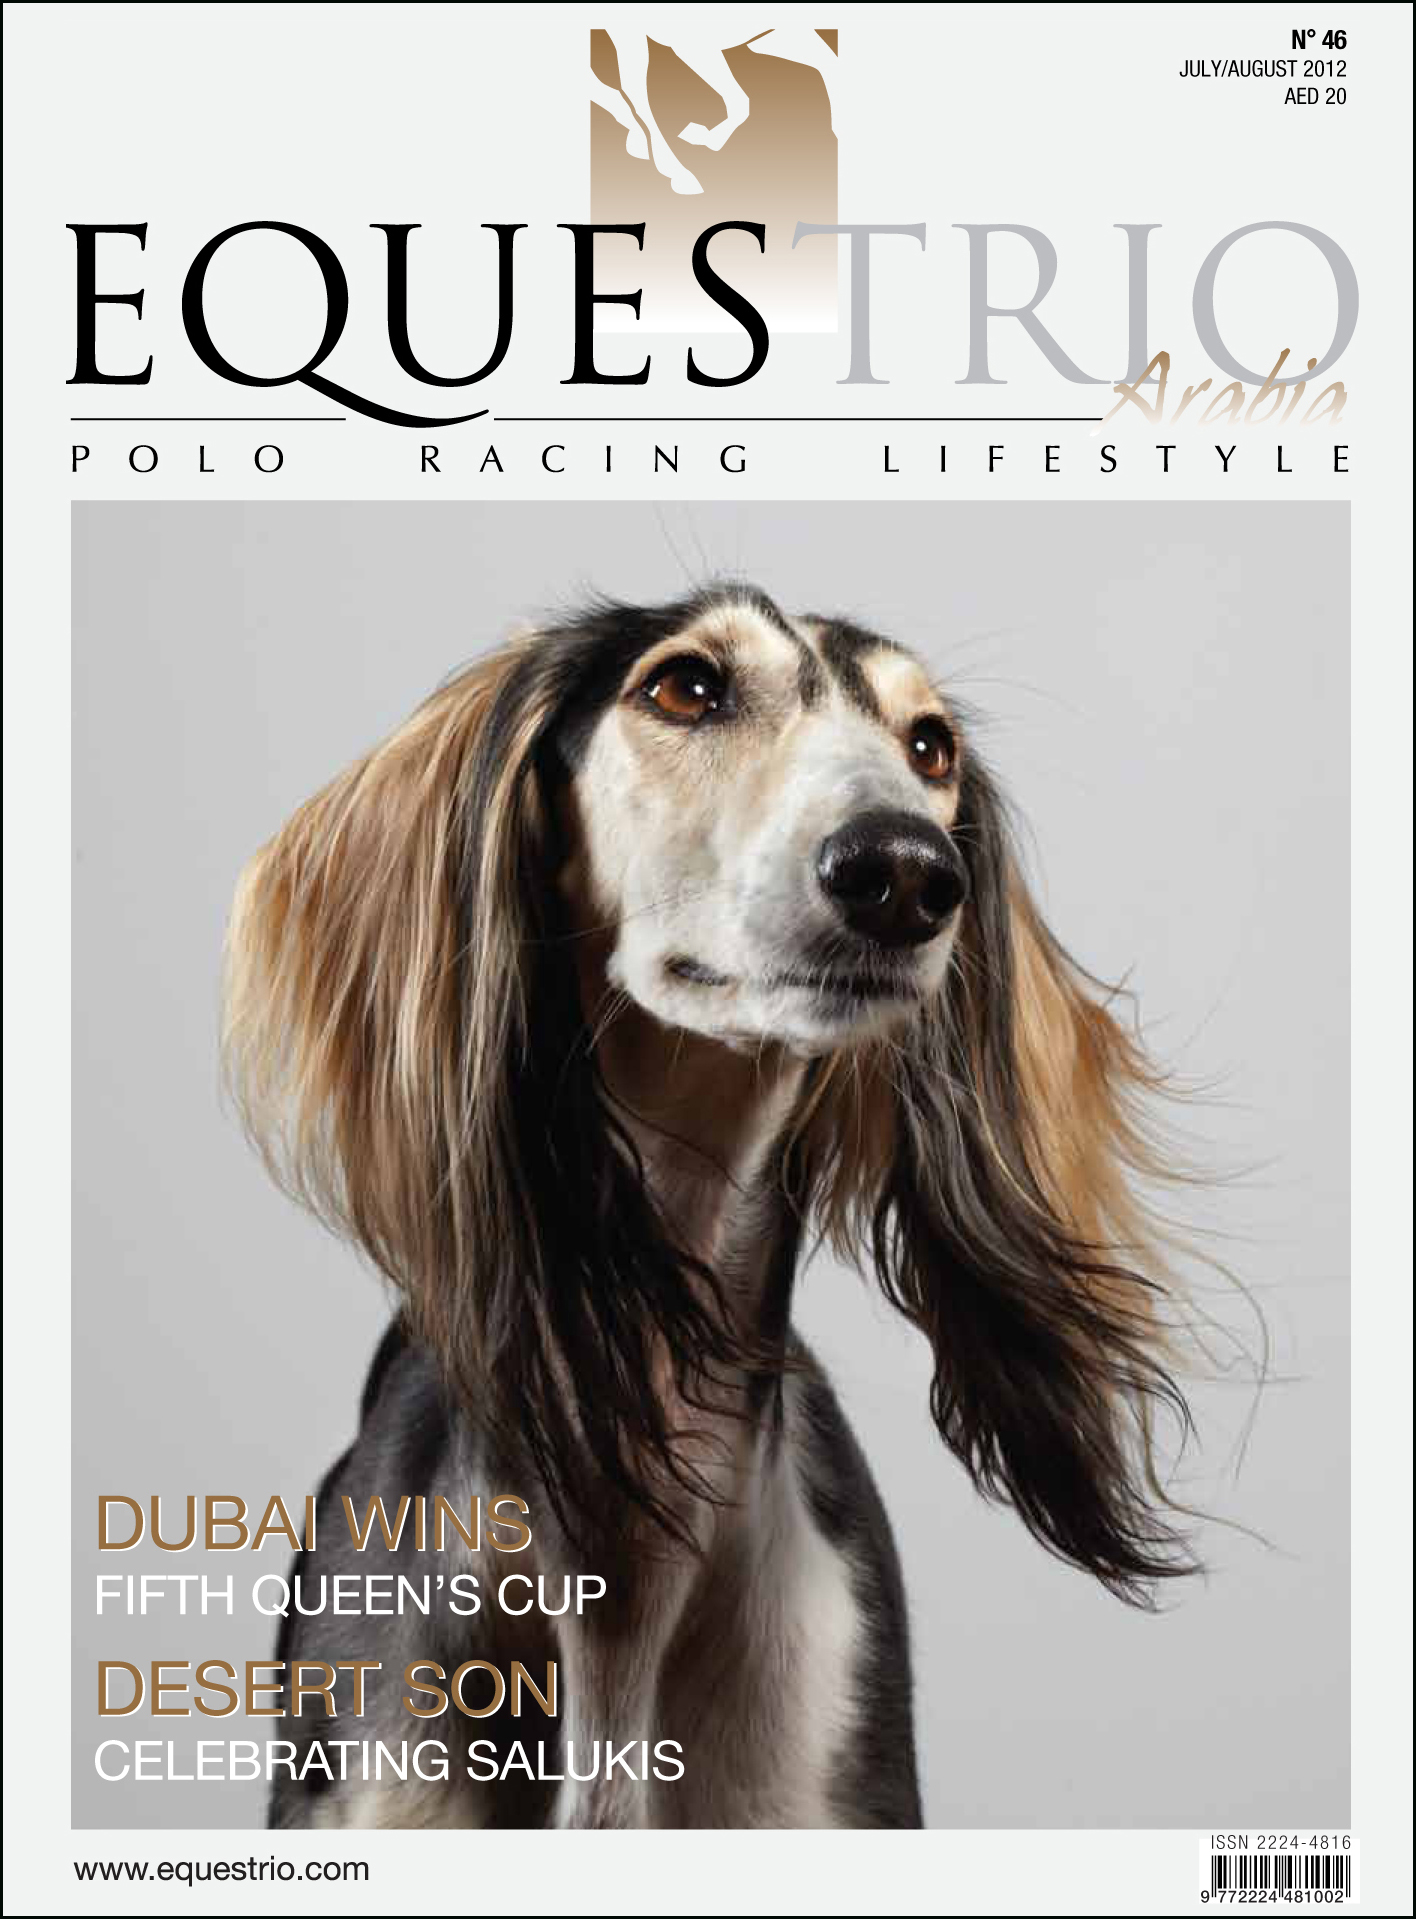 Equestrio magazine feature on the Arabian Saluki